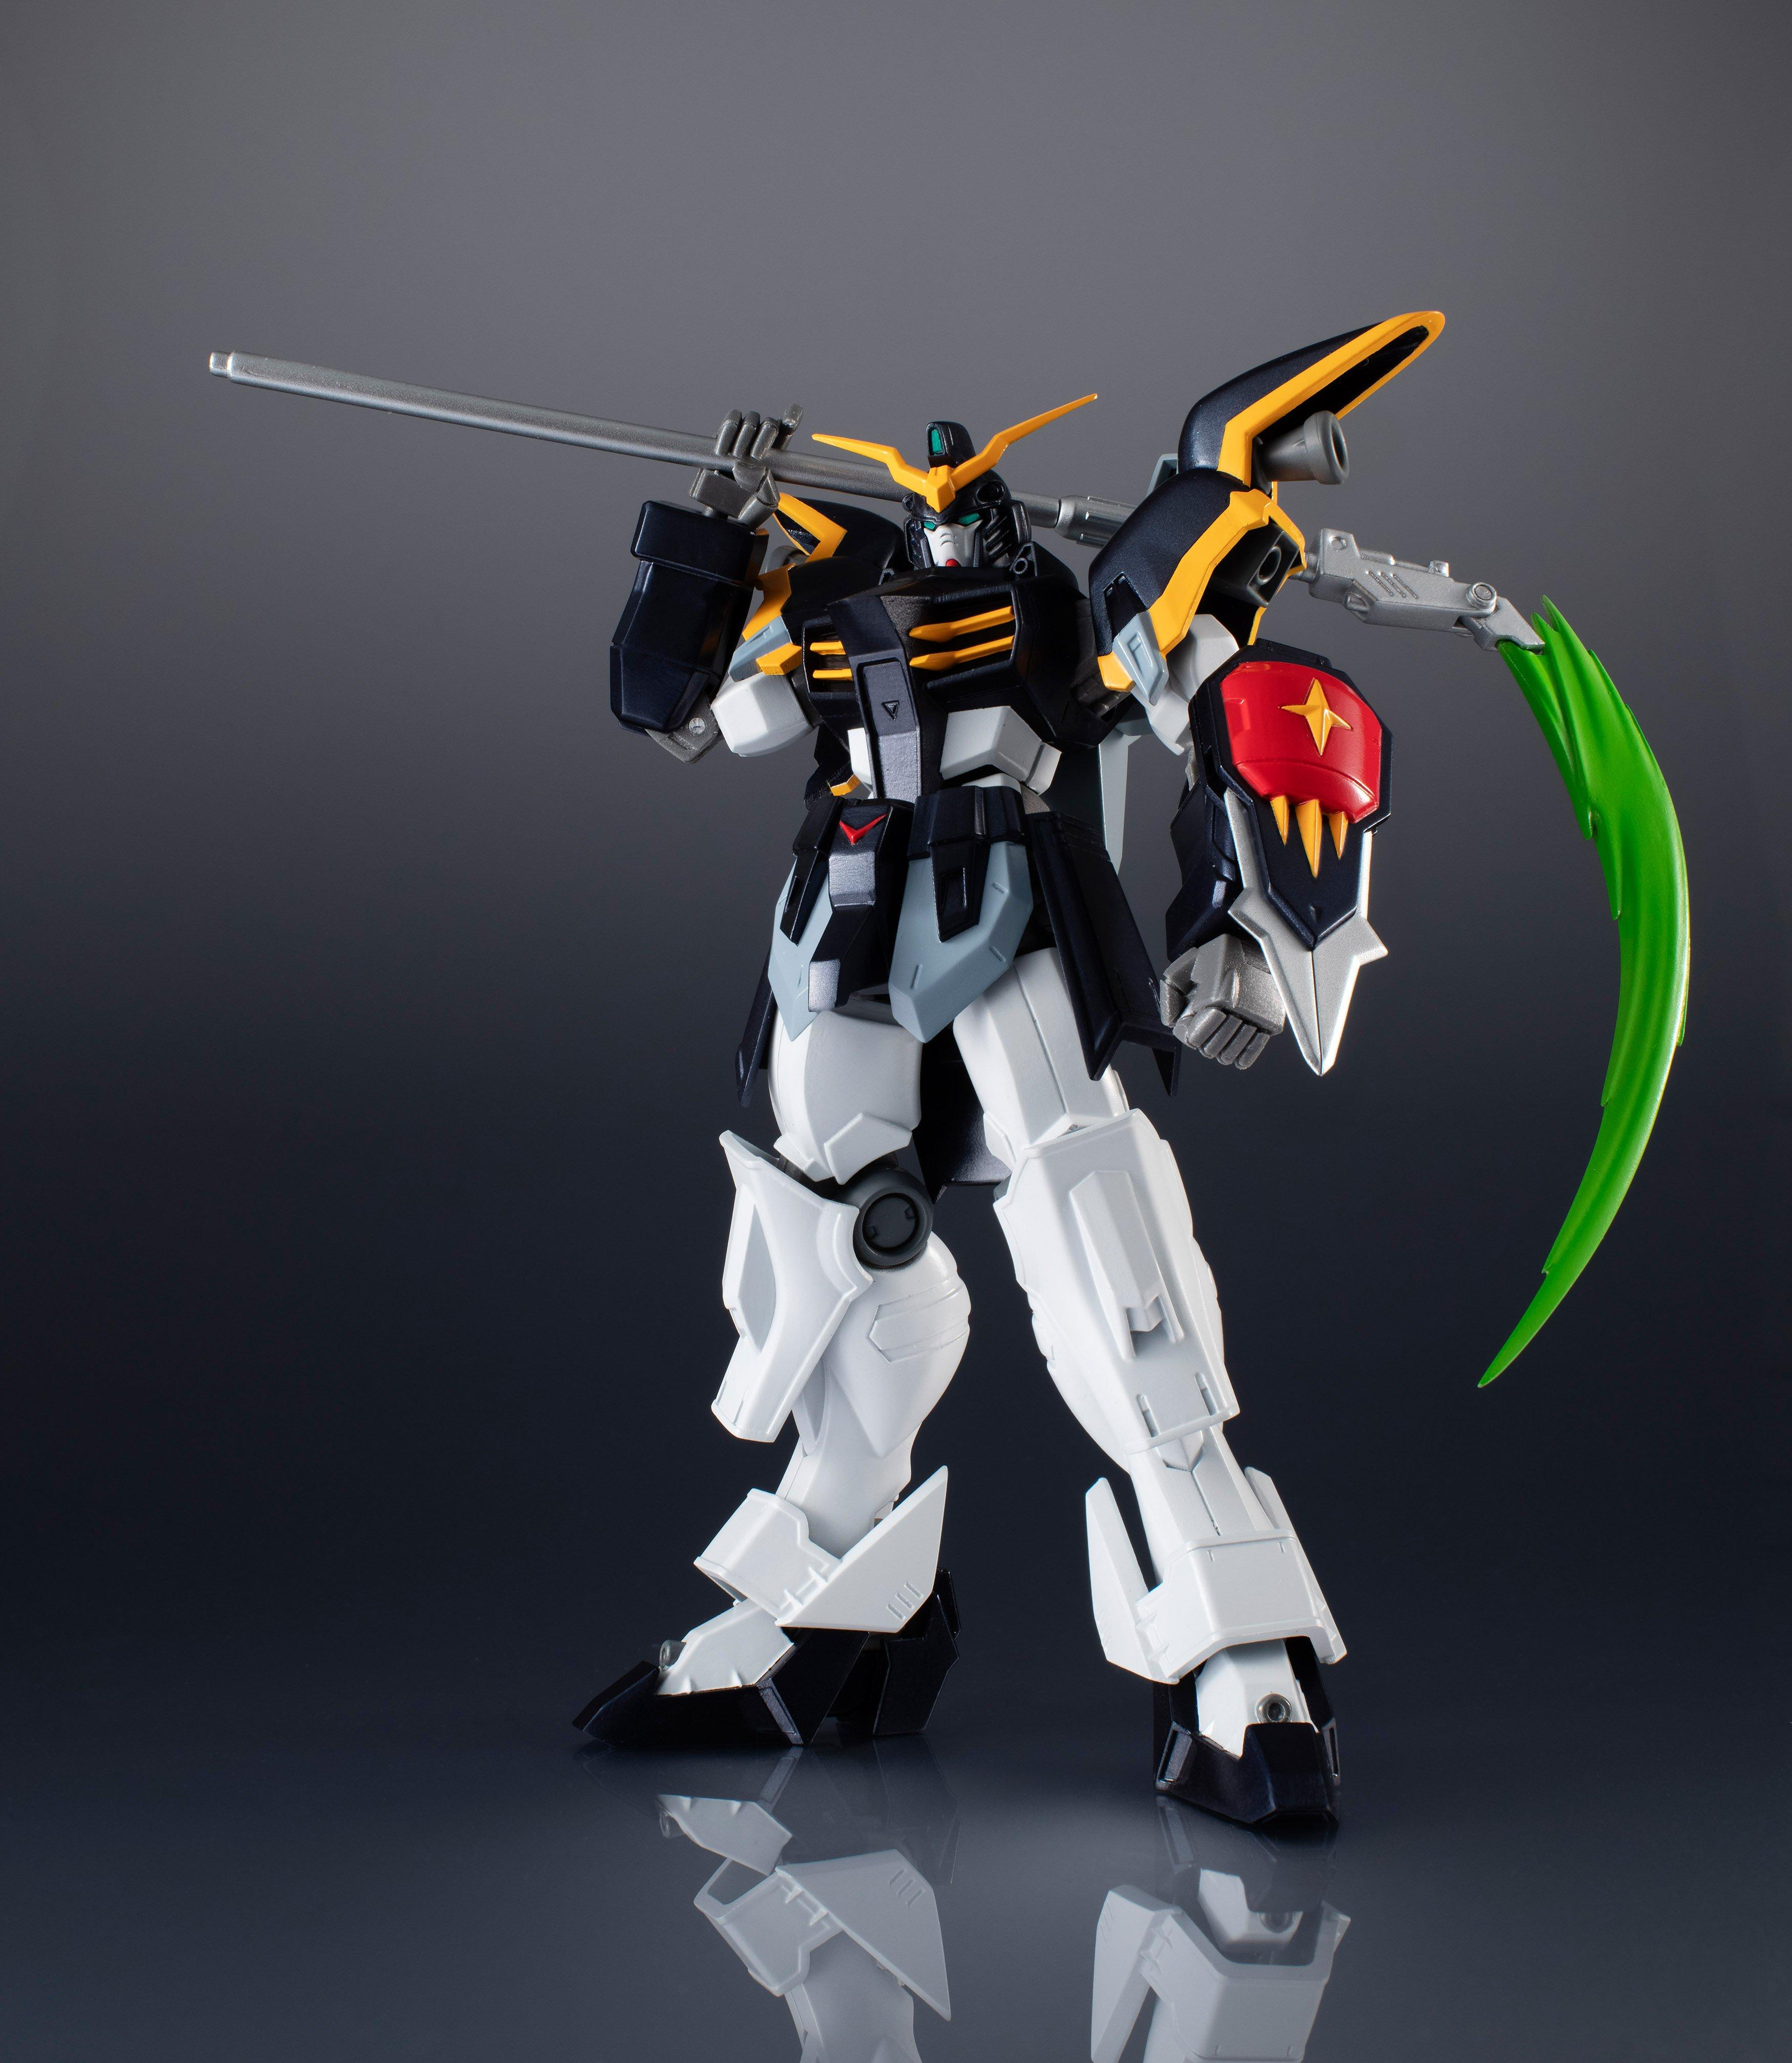 Bandai Mobile Suit Fighter Gundam Wing Deathscythe version 1 action figure MSIA